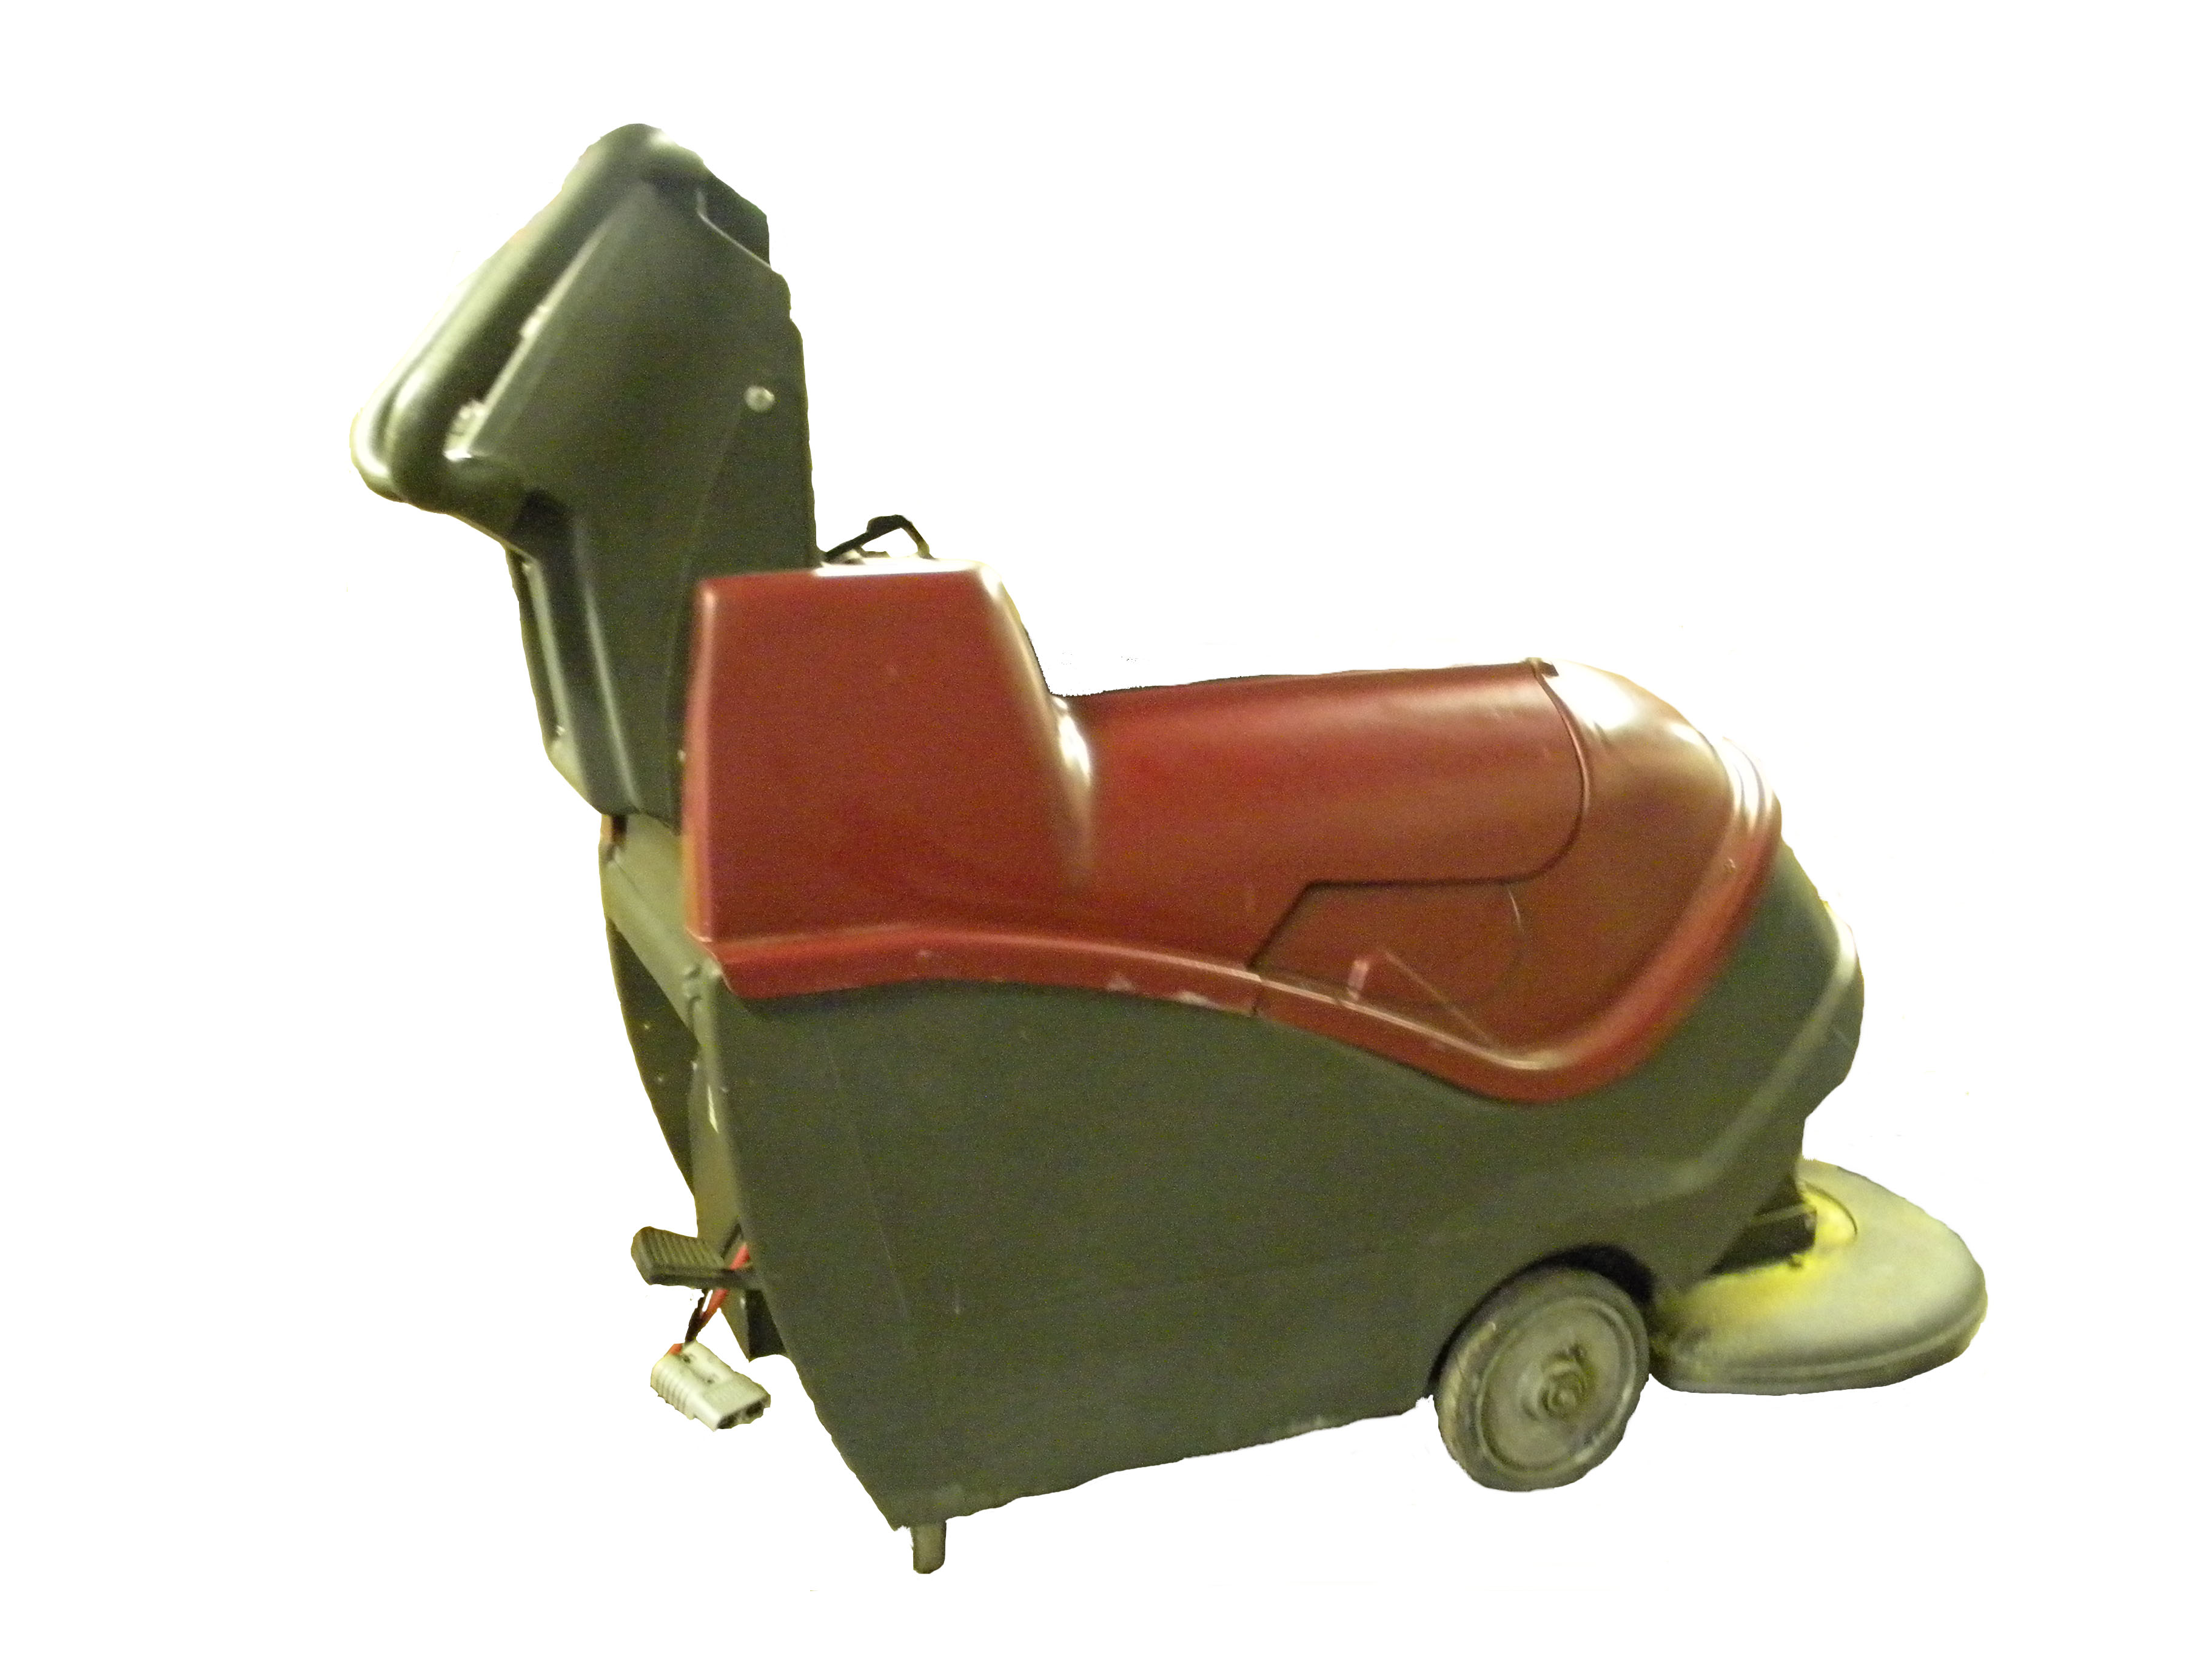 dragon bc don equipment jon wood inch nobles scrubber floor dirtdfs ea floors coatings dirt minuteman tennant scrubbers accessories cleaning basic auto more